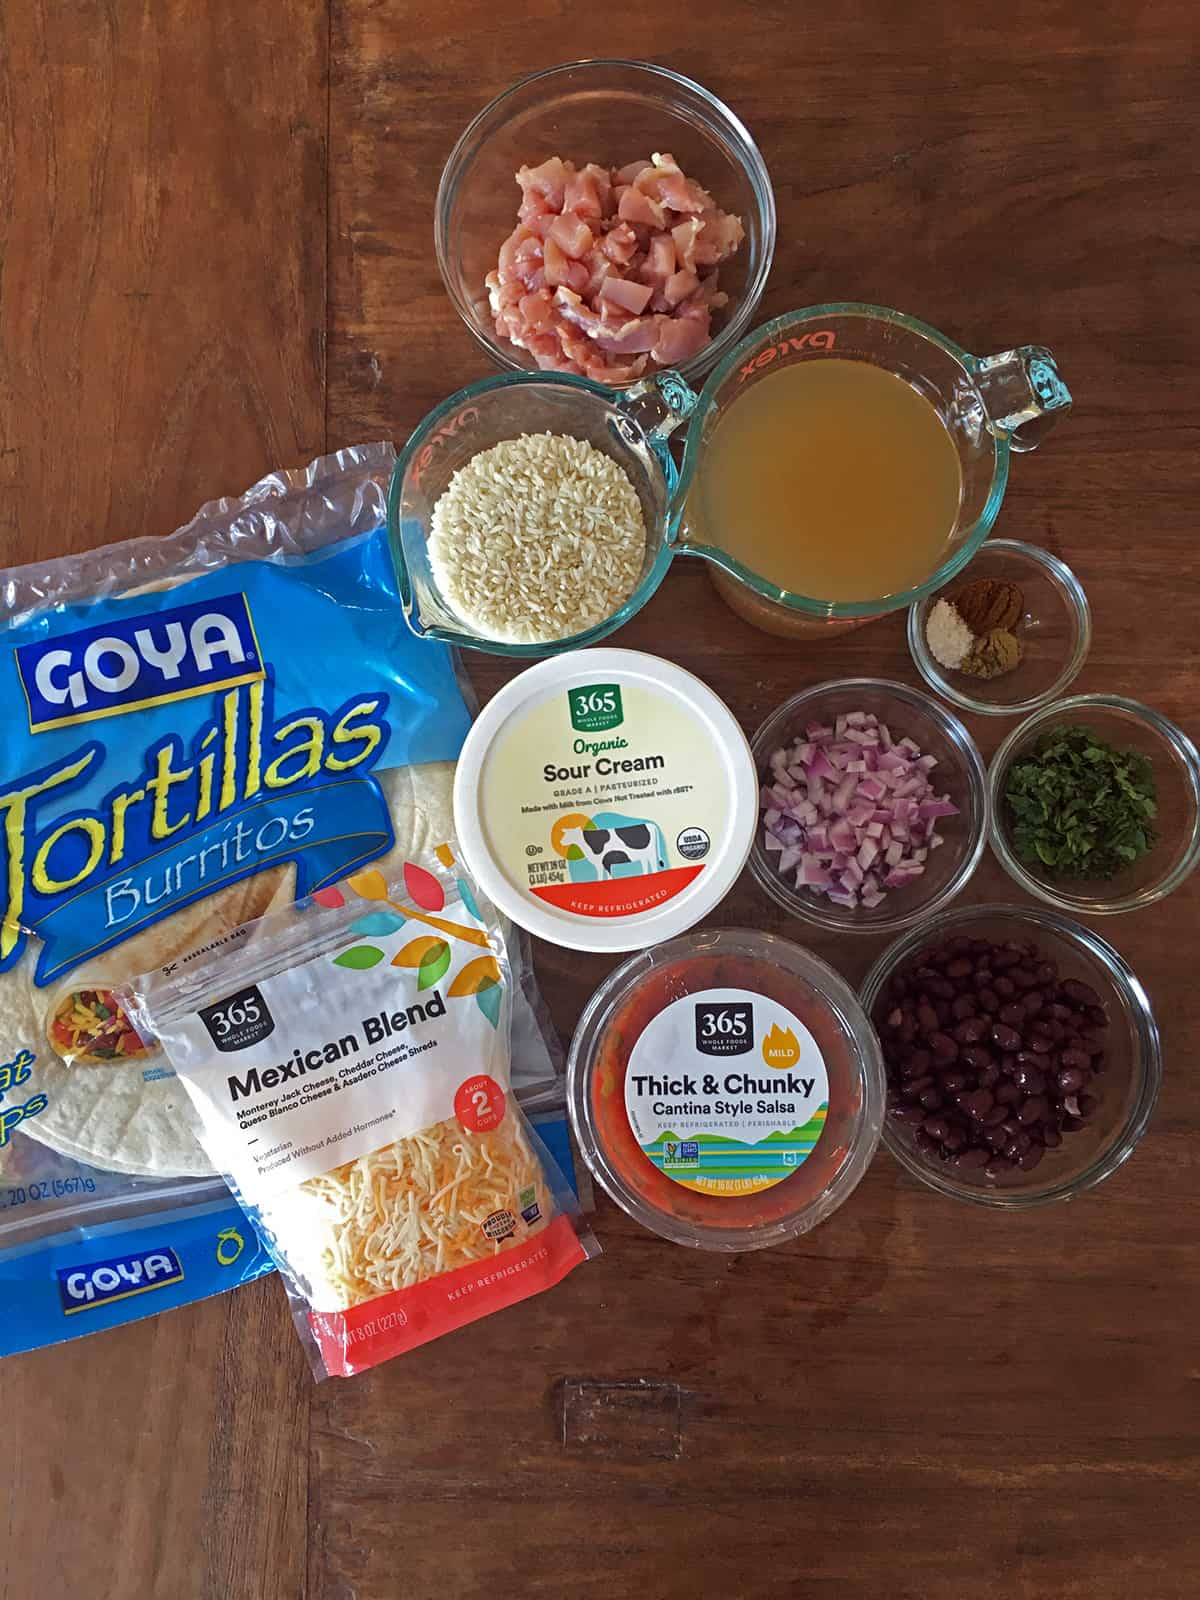 Chicken burrito ingredients on a wood table including rice, black beans, sour cream, salsa and shredded cheese